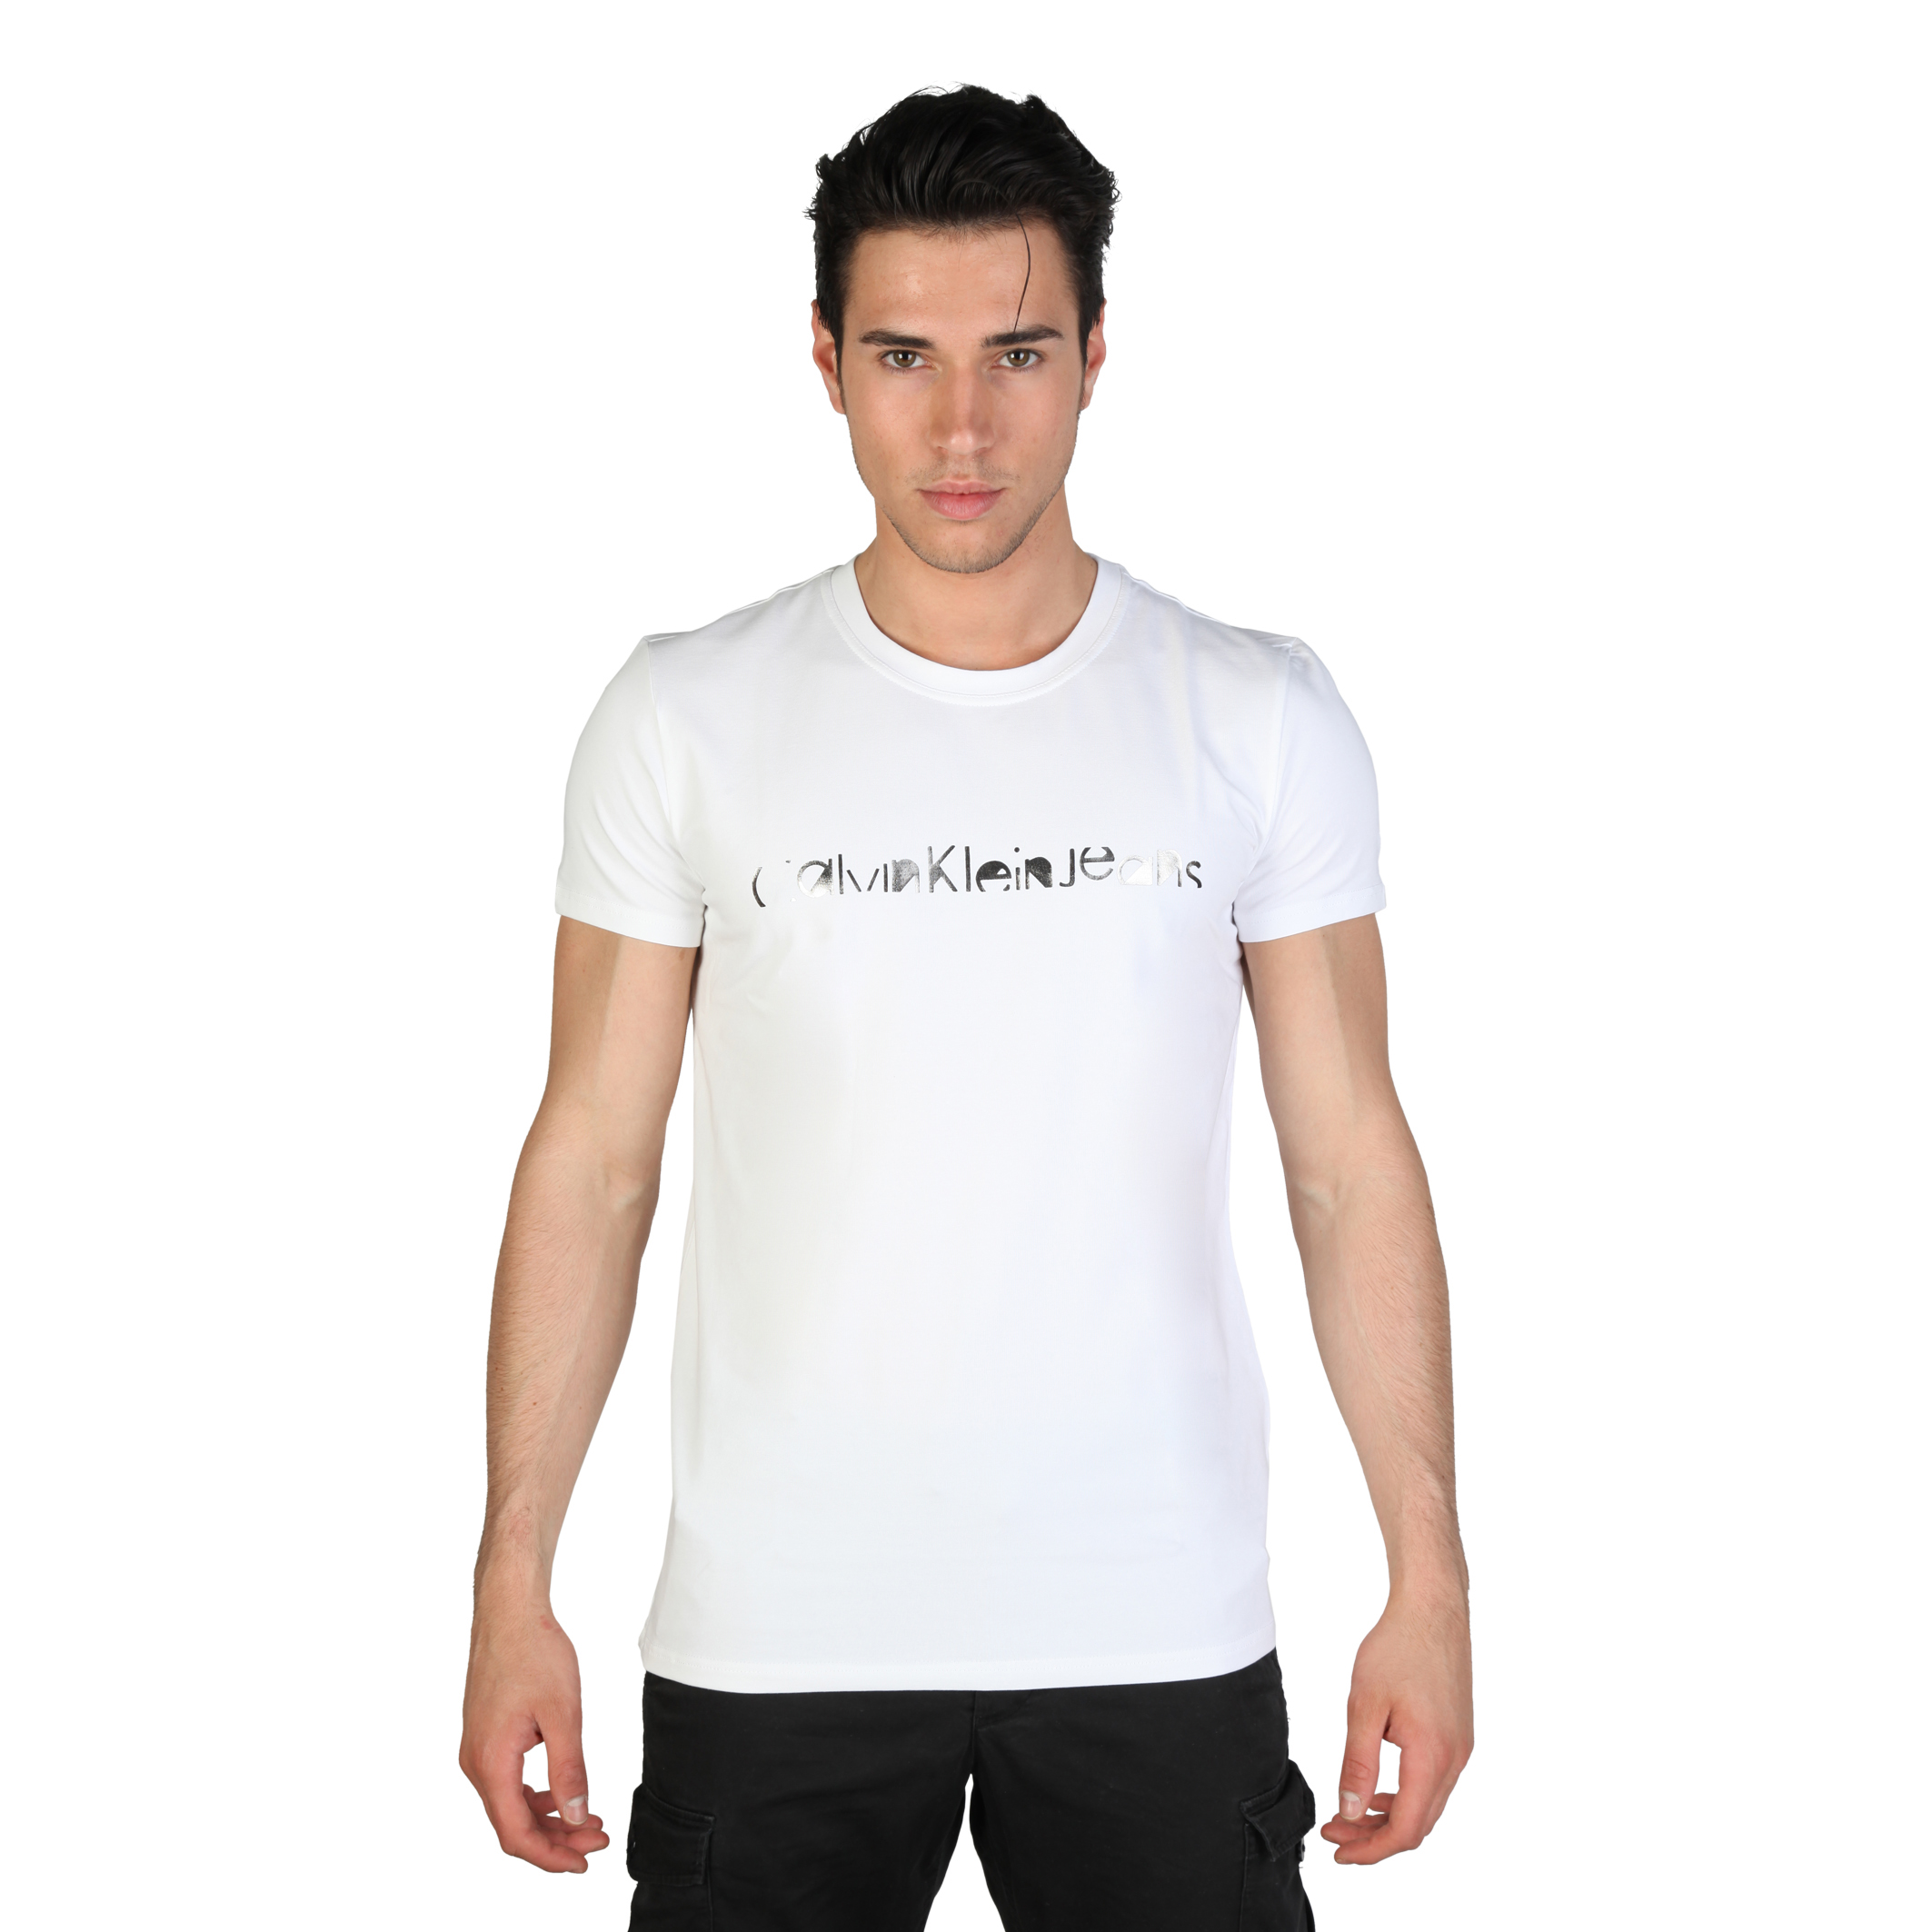 calvin klein herren kurzarm t shirt mit rundhalsausschnitt. Black Bedroom Furniture Sets. Home Design Ideas